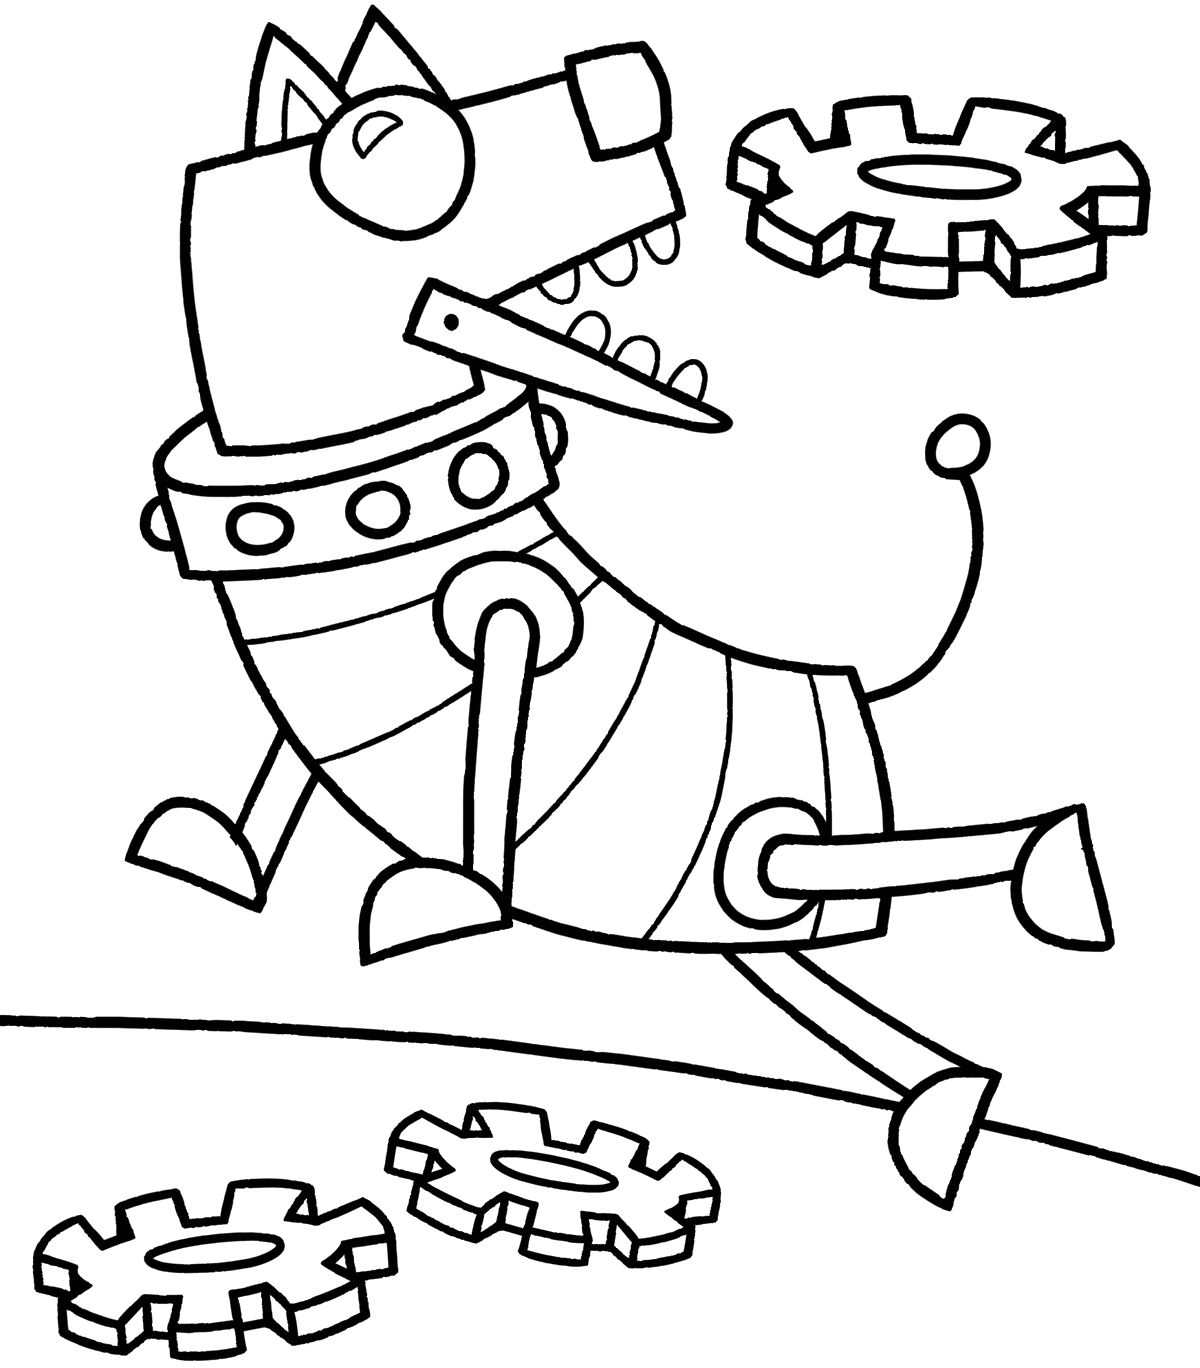 Robot Coloring Pages Printable PARTAY Dog coloring